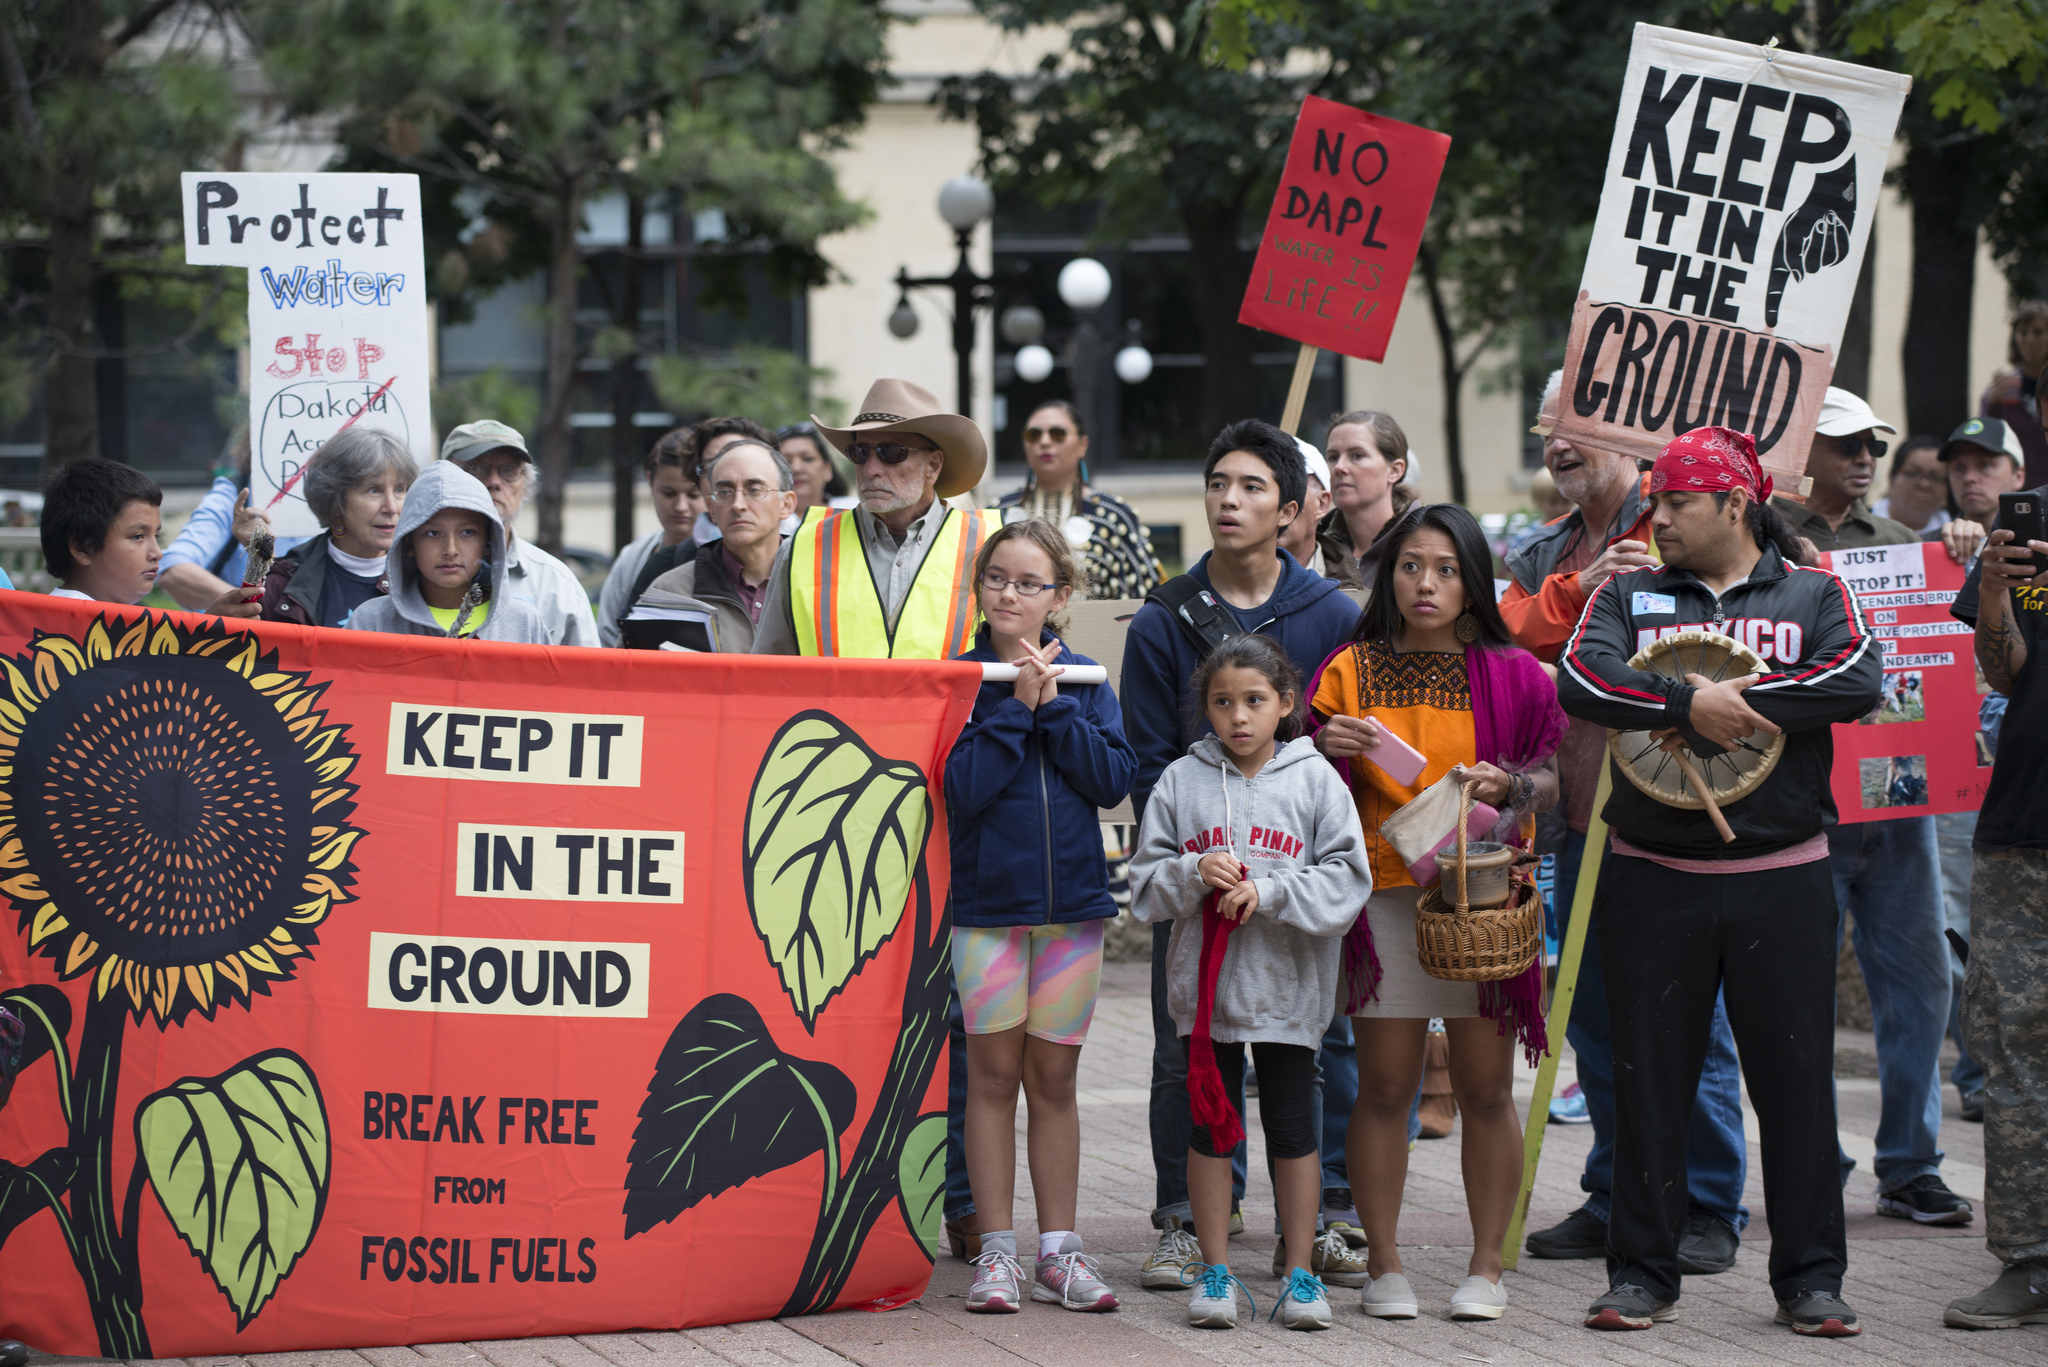 Protesters show solidarity with the Standing Rock Sioux Tribe against the Dakota Access Pipeline in a September 13, 2016 rally in St. Paul, Minnesota. (Photo: Fibonacci Blue/Flickr)